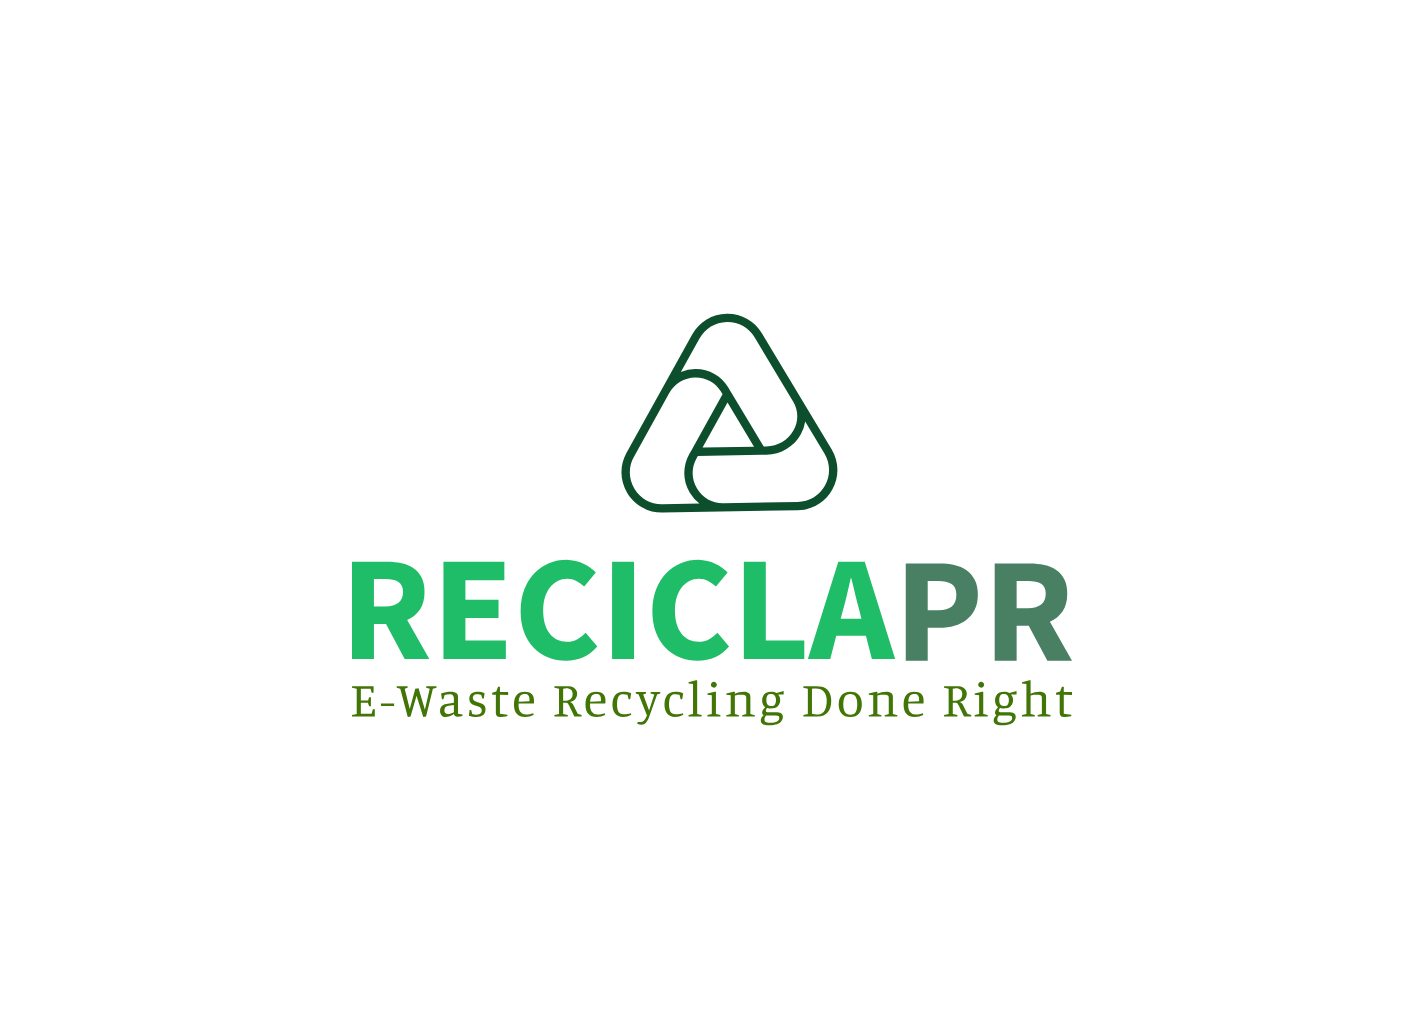 ReciclaPR